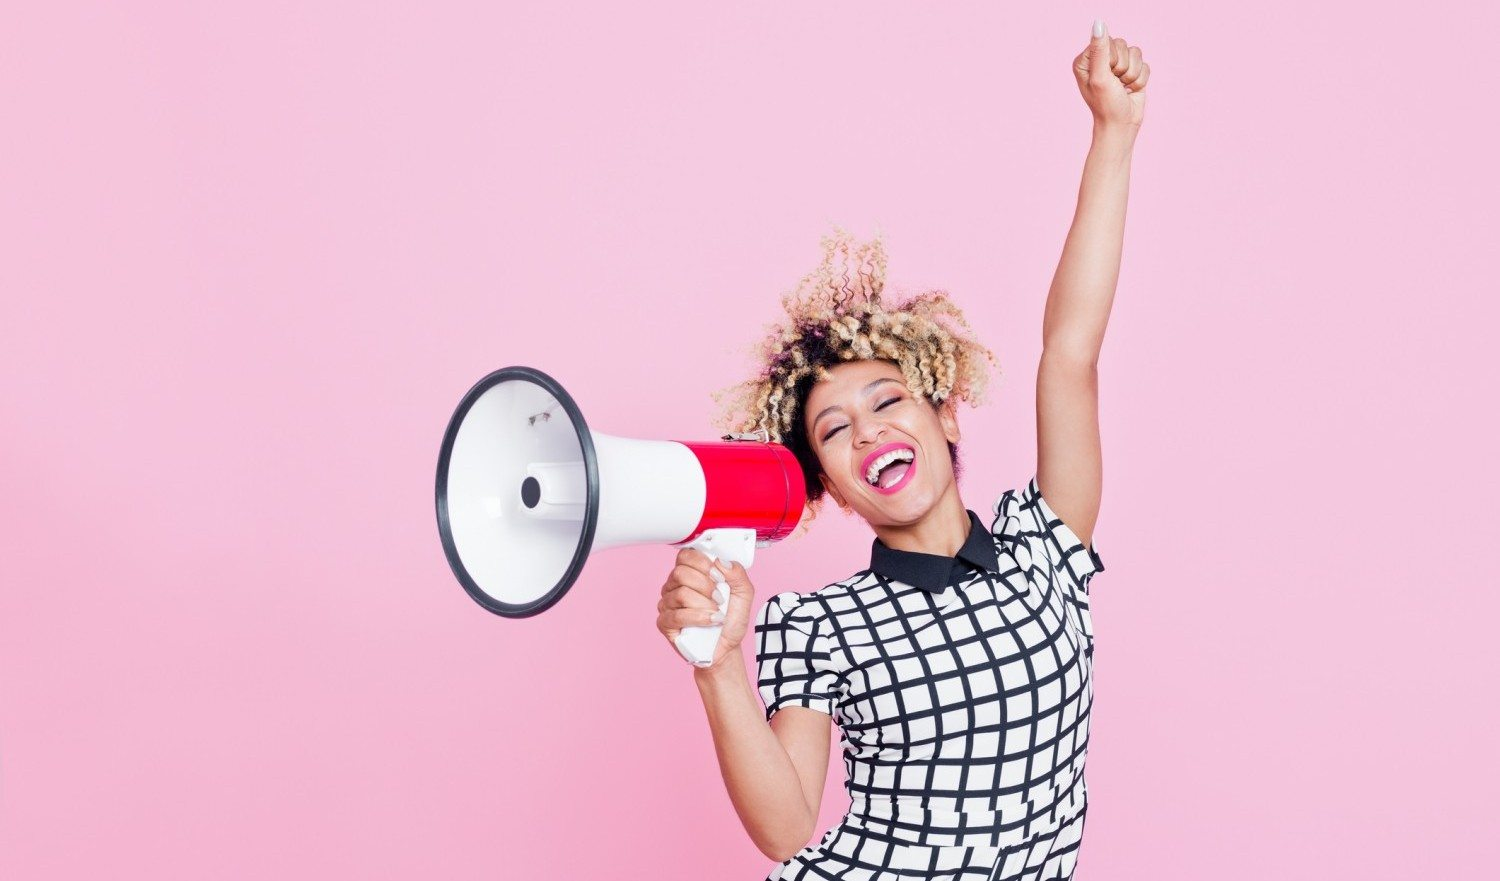 Summer portrait of beautiful afro american young woman, wearing grid check playsuit, standing against pink background, shouting into megaphone. Studio shot.